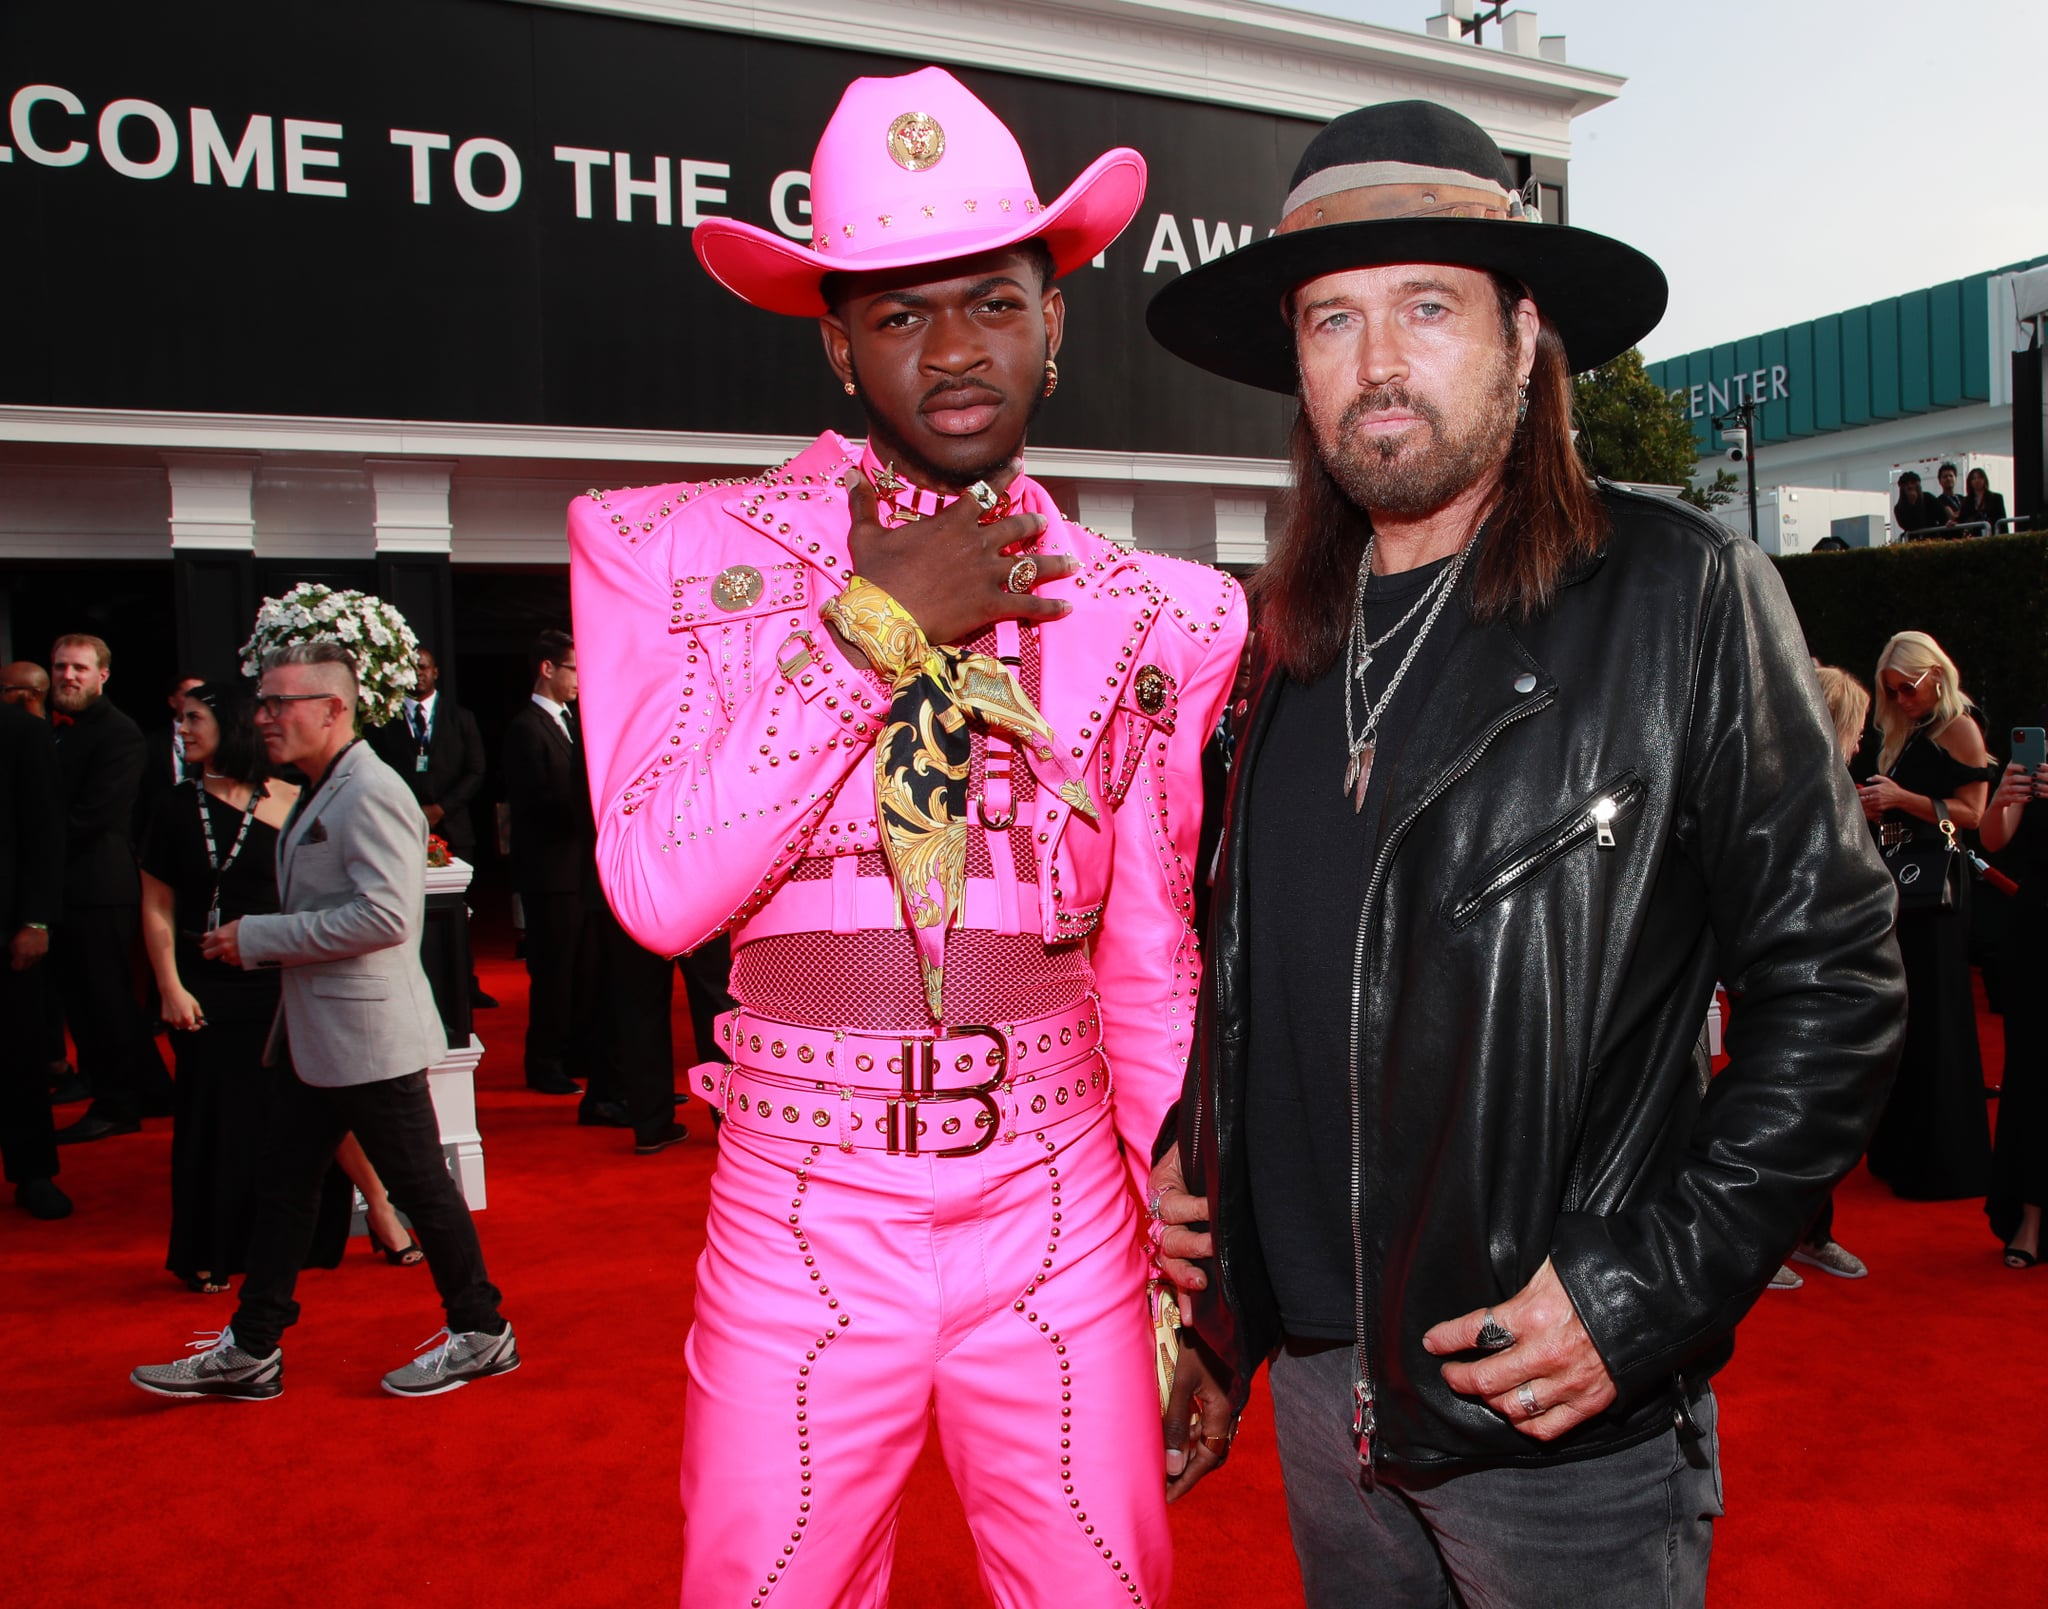 LOS ANGELES, CALIFORNIA - JANUARY 26: (L-R) Lil Nas X and Billy Ray Cyrus attend the 62nd Annual GRAMMY Awards at STAPLES Centre on January 26, 2020 in Los Angeles, California. (Photo by Rich Fury/Getty Images for The Recording Academy)